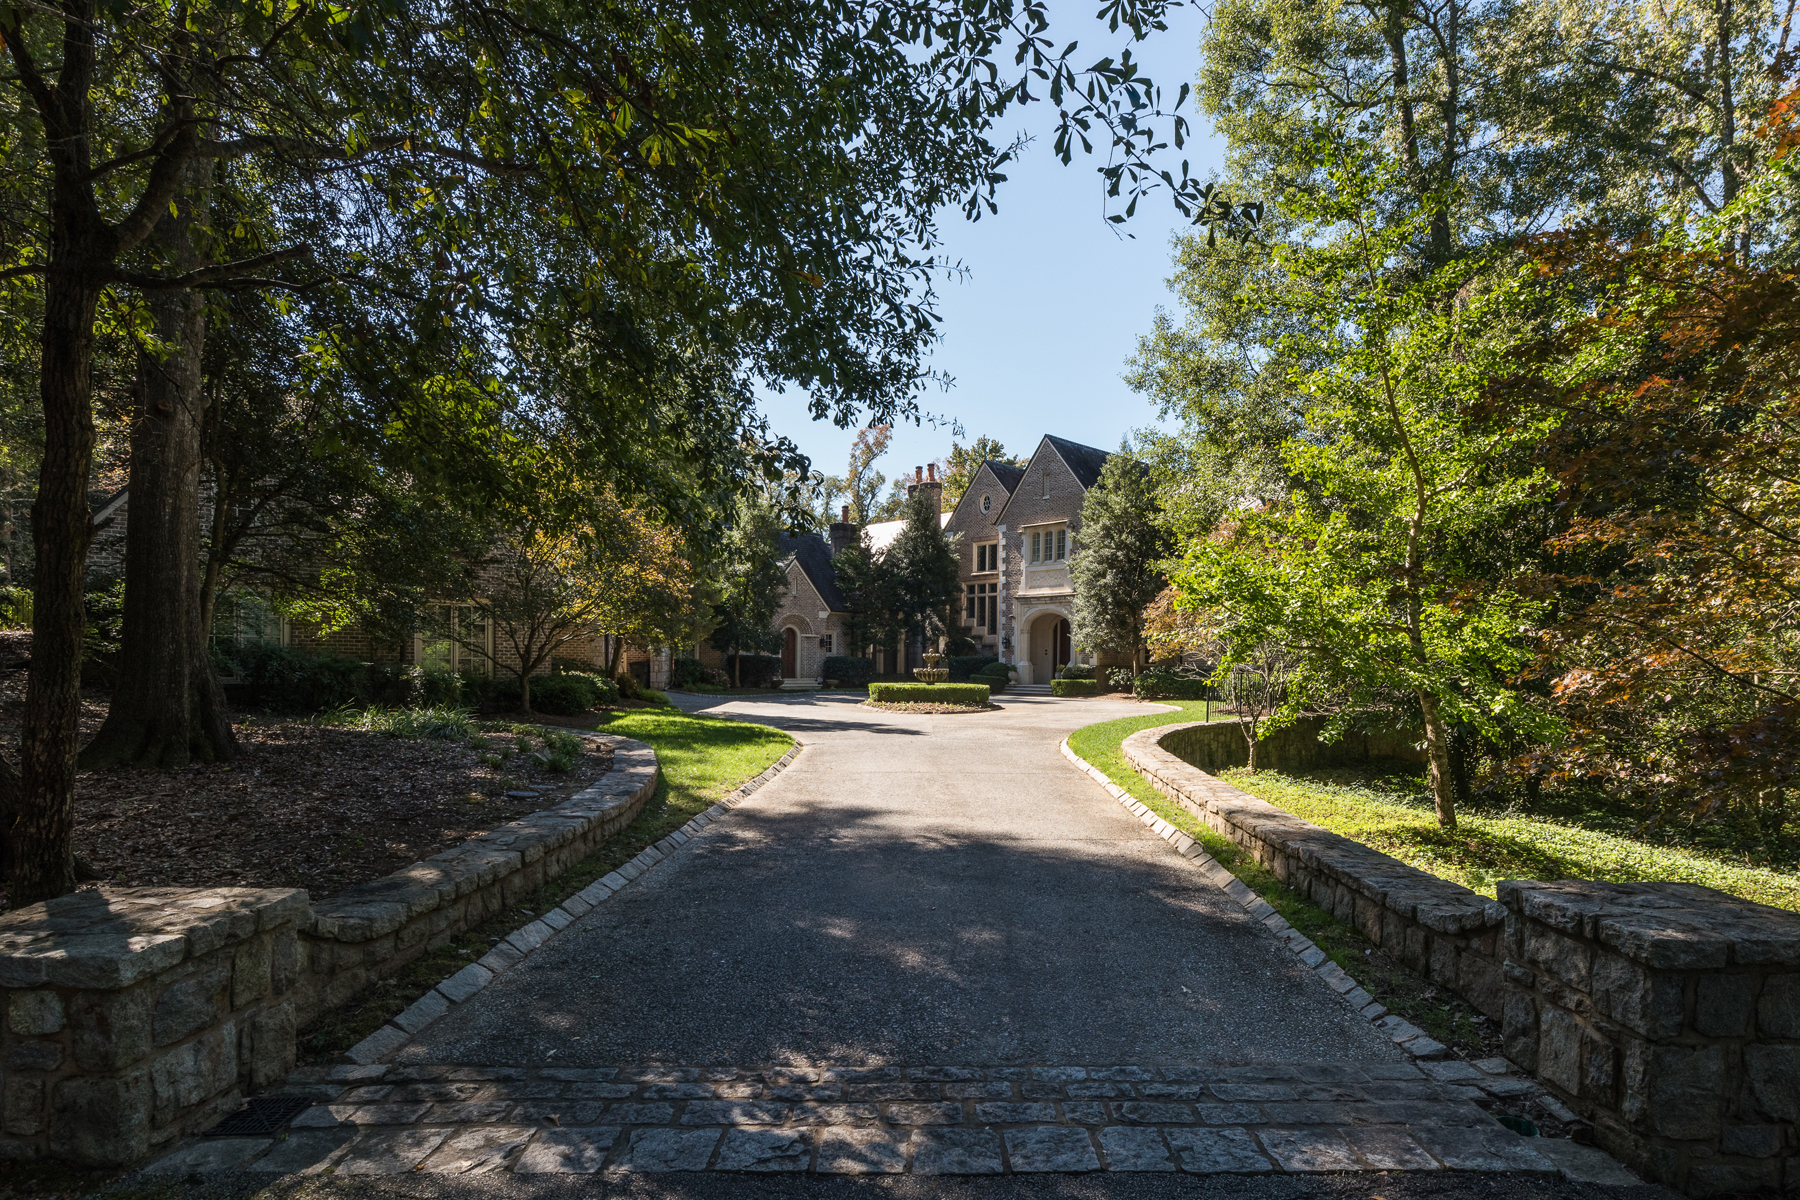 Single Family Home for Sale at An Award Winning Tudor In Buckhead 2032 W Paces Ferry Road Atlanta, Georgia 30327 United States